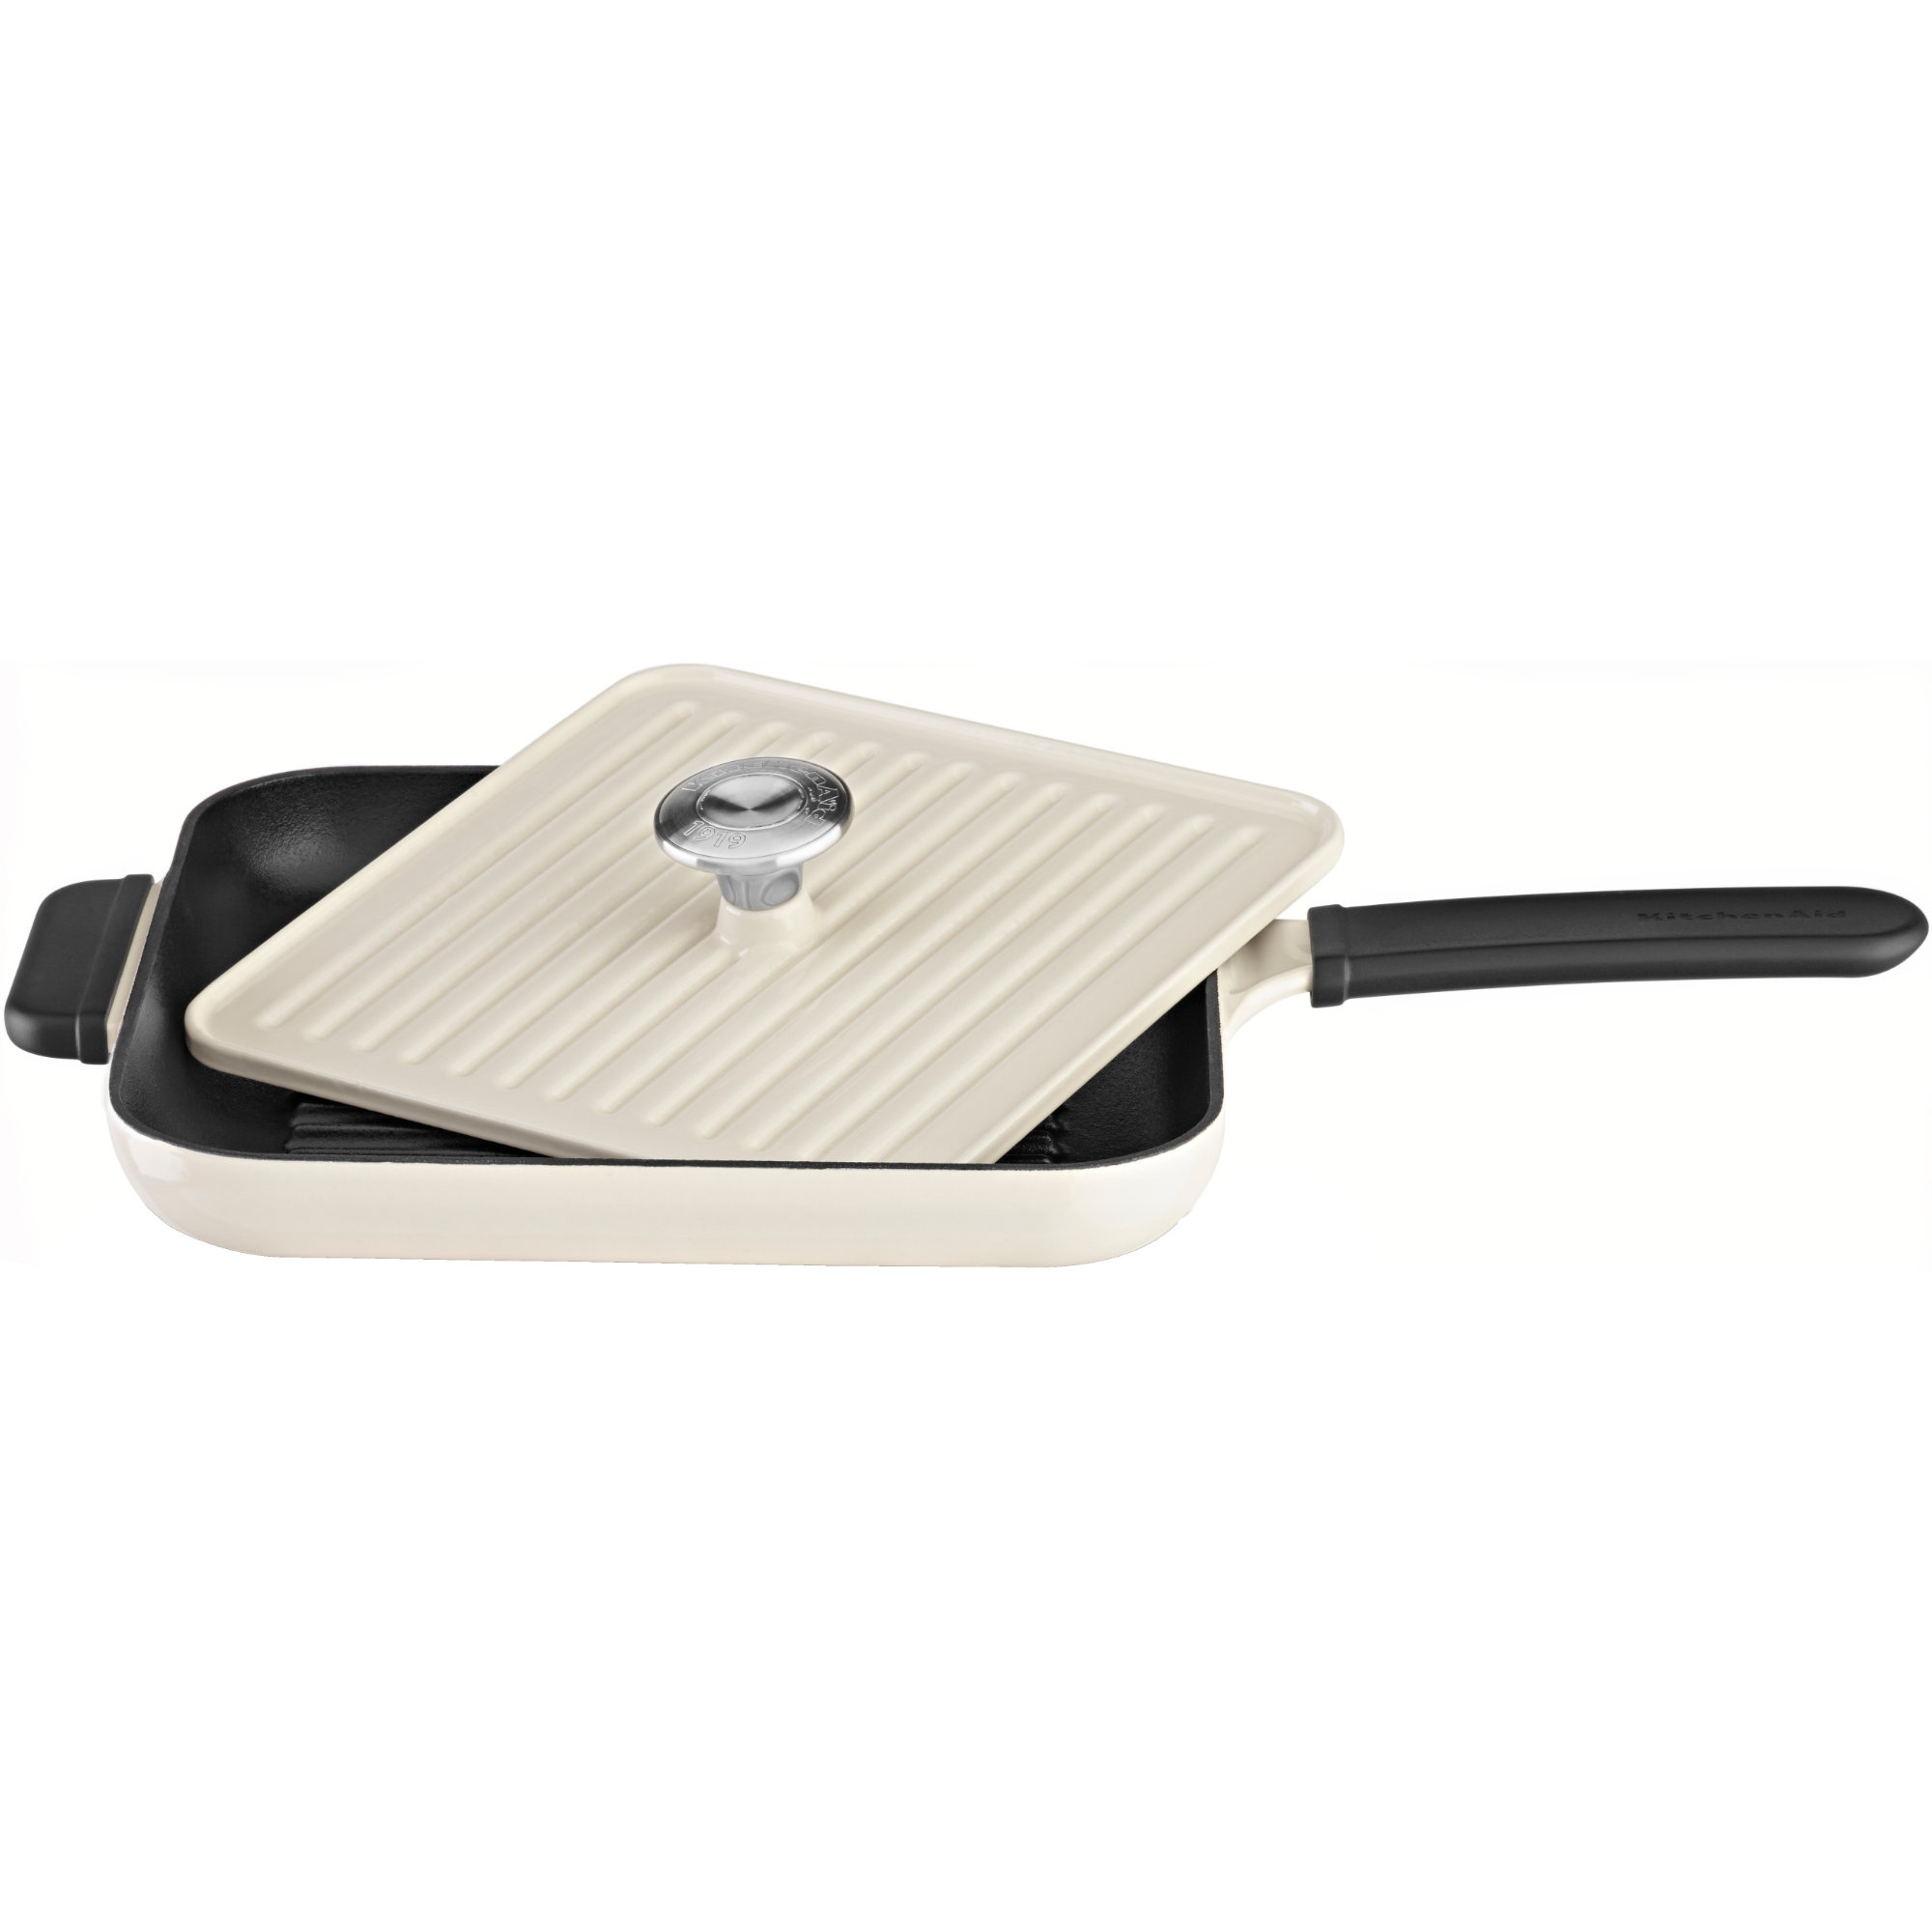 KitchenAid Grill och Panini Press 25×25 cm Creme